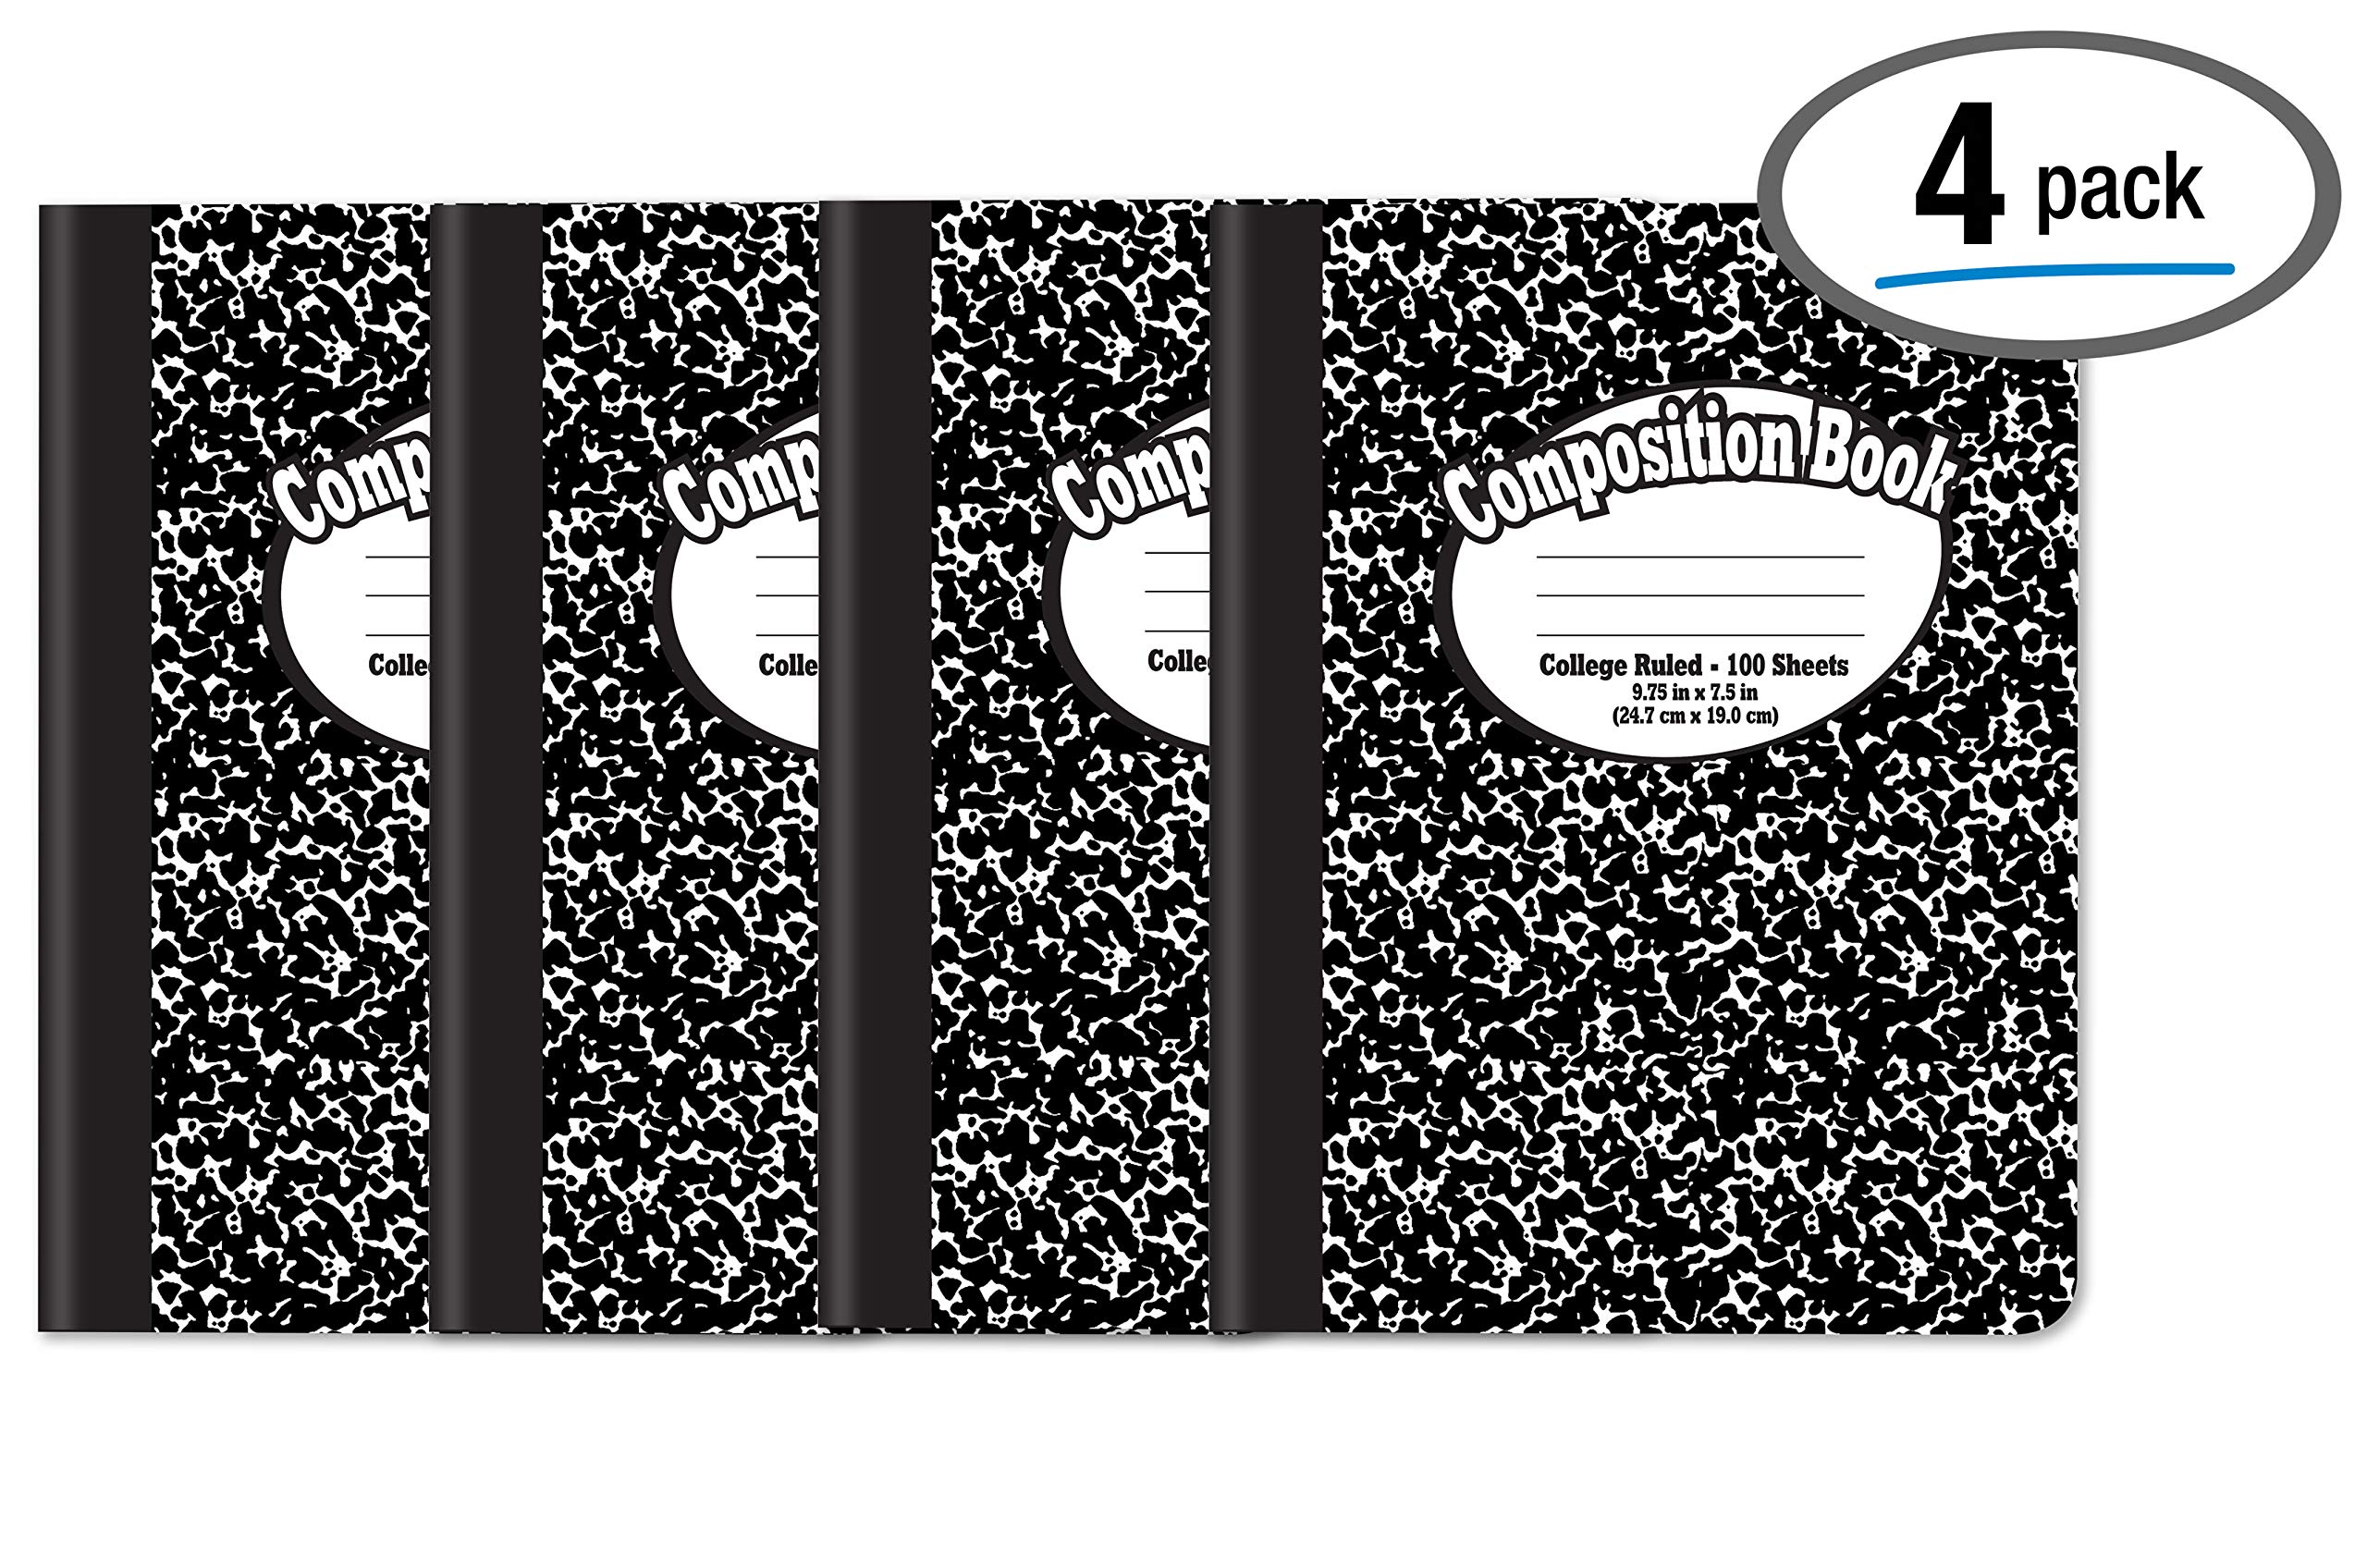 Composition Book Notebook - Hardcover, College Ruled (9/32-inch), 100 Sheet, One Subject, 9.75'' x 7.5'', Black Cover-4 Pack